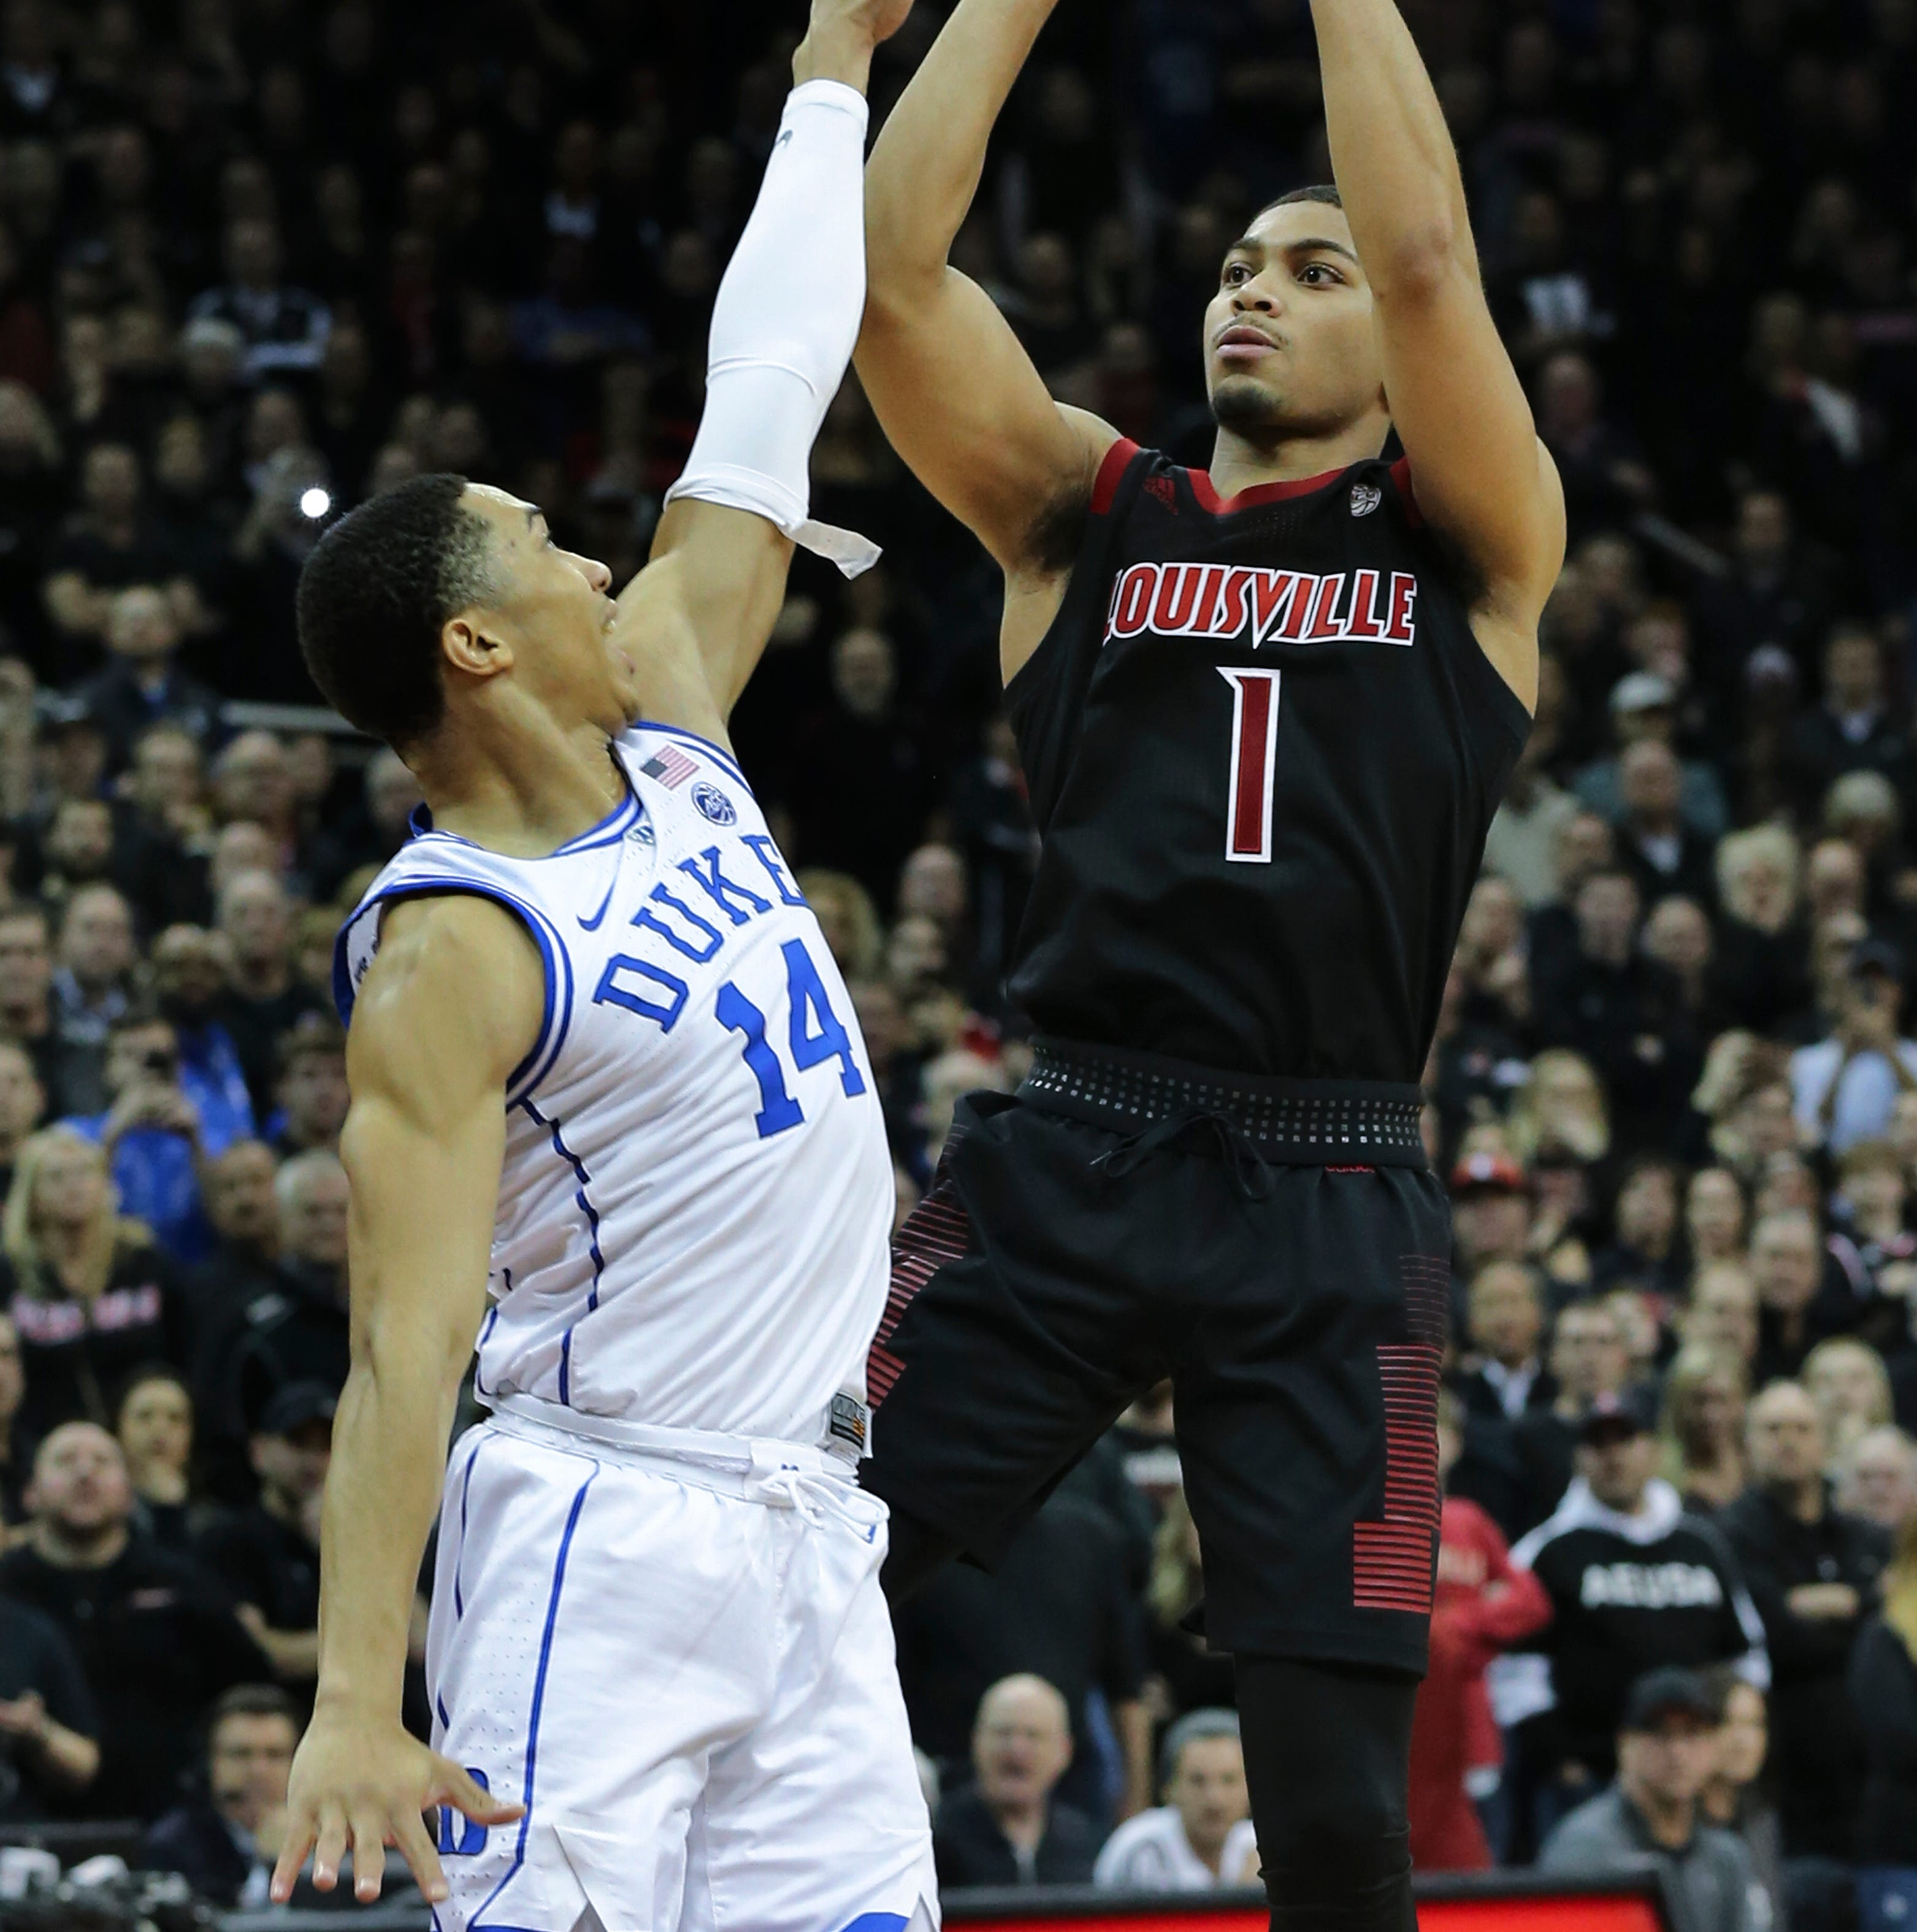 U of L's Christen Cunningham (1) gets one last look at the basket against Duke's Jordan Goldwire (14) at the Yum Center, but the shot came up short near the end of the game.  Duke shot free throws to win 71-69.Feb. 12, 2019